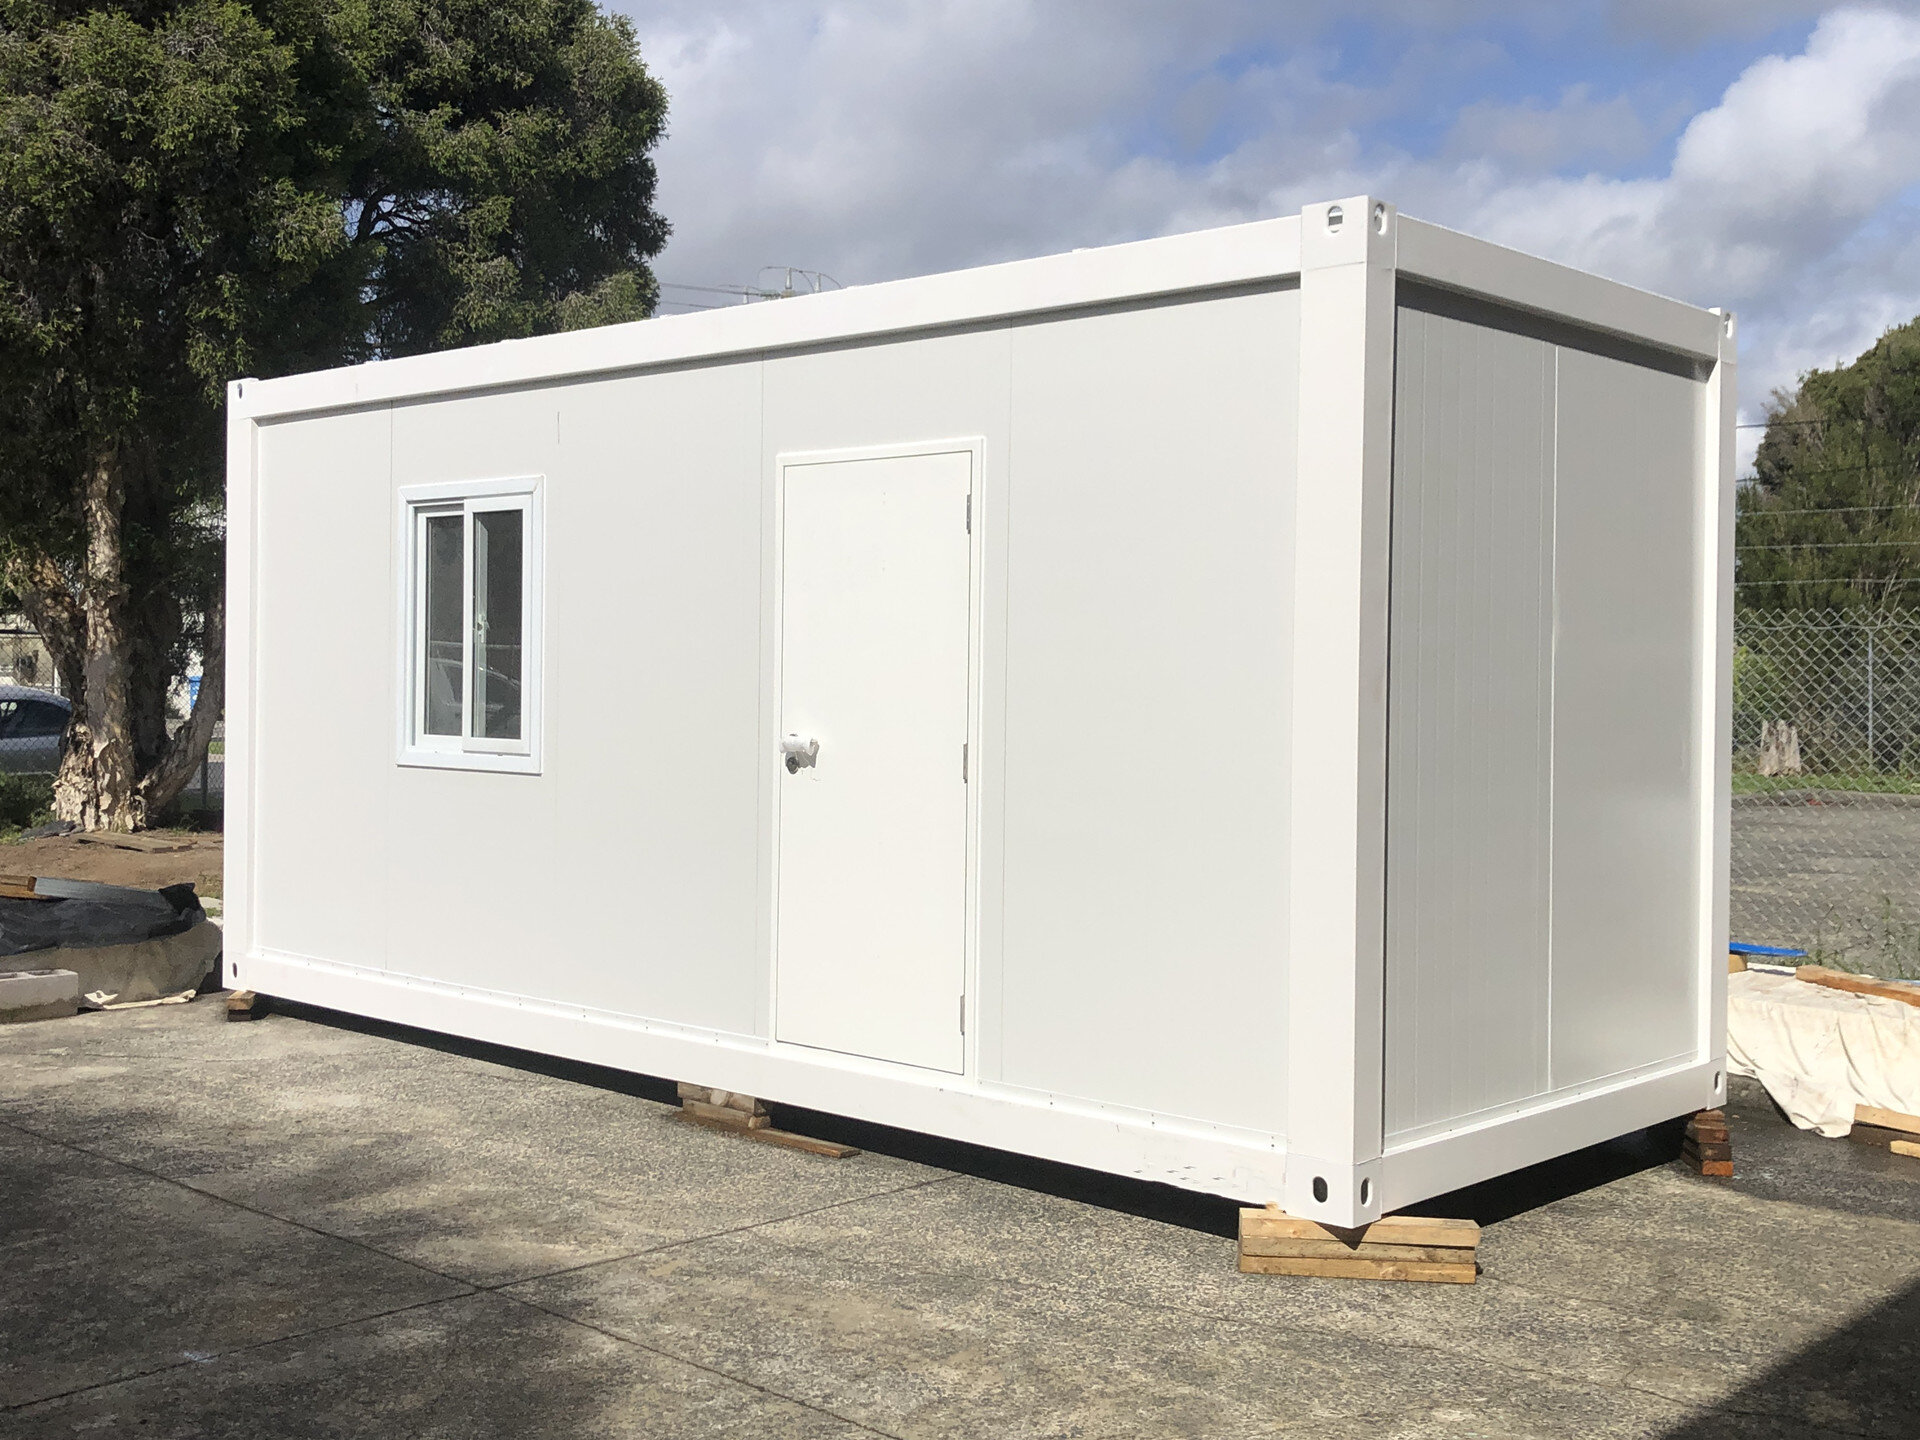 Flatcuby Lite container house